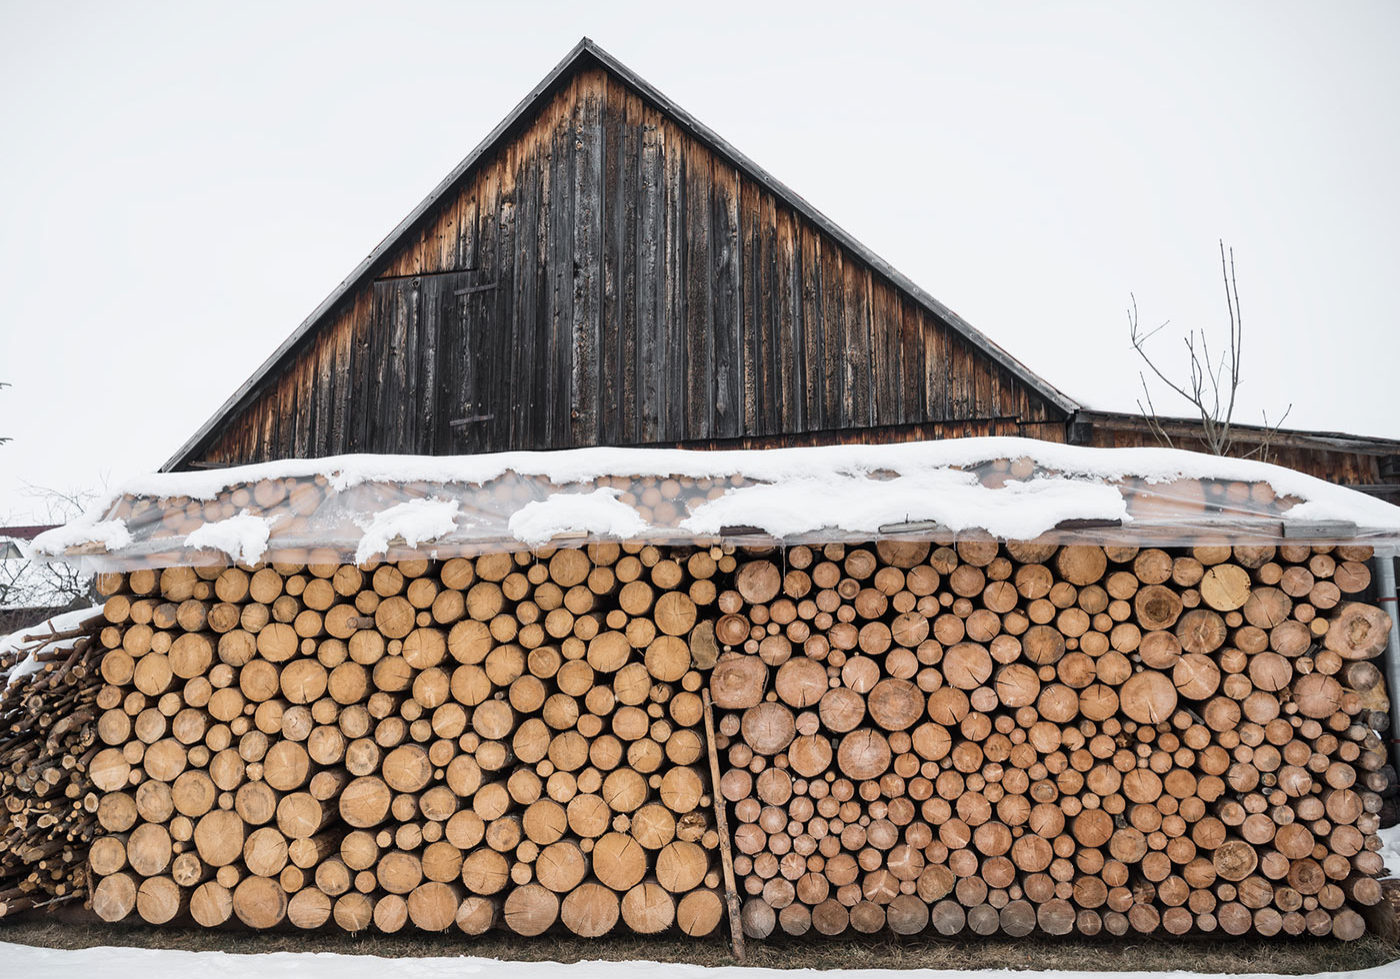 bigstock-Pile-Of-Wood-Logs-Ready-For-Wi-226564582